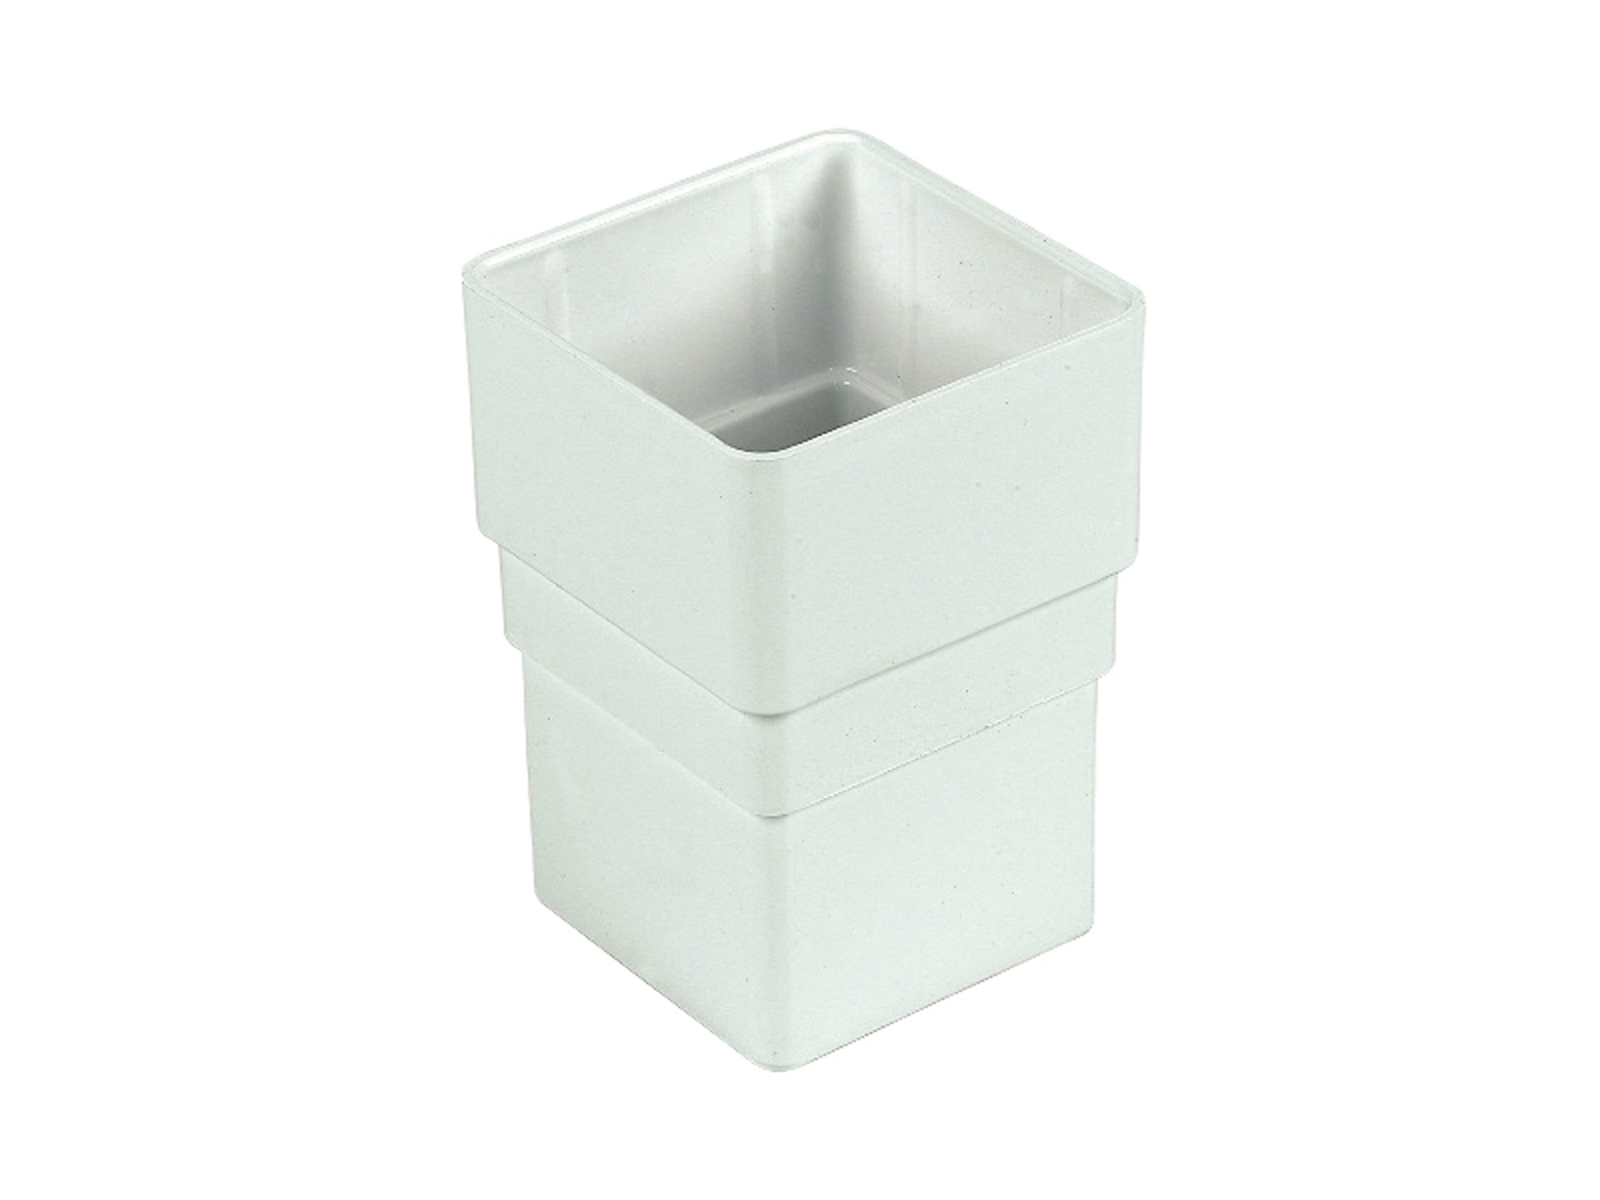 FLOPLAST RSS1WH 65MM SQUARE DOWNPIPE - PIPE SOCKET - WHITE